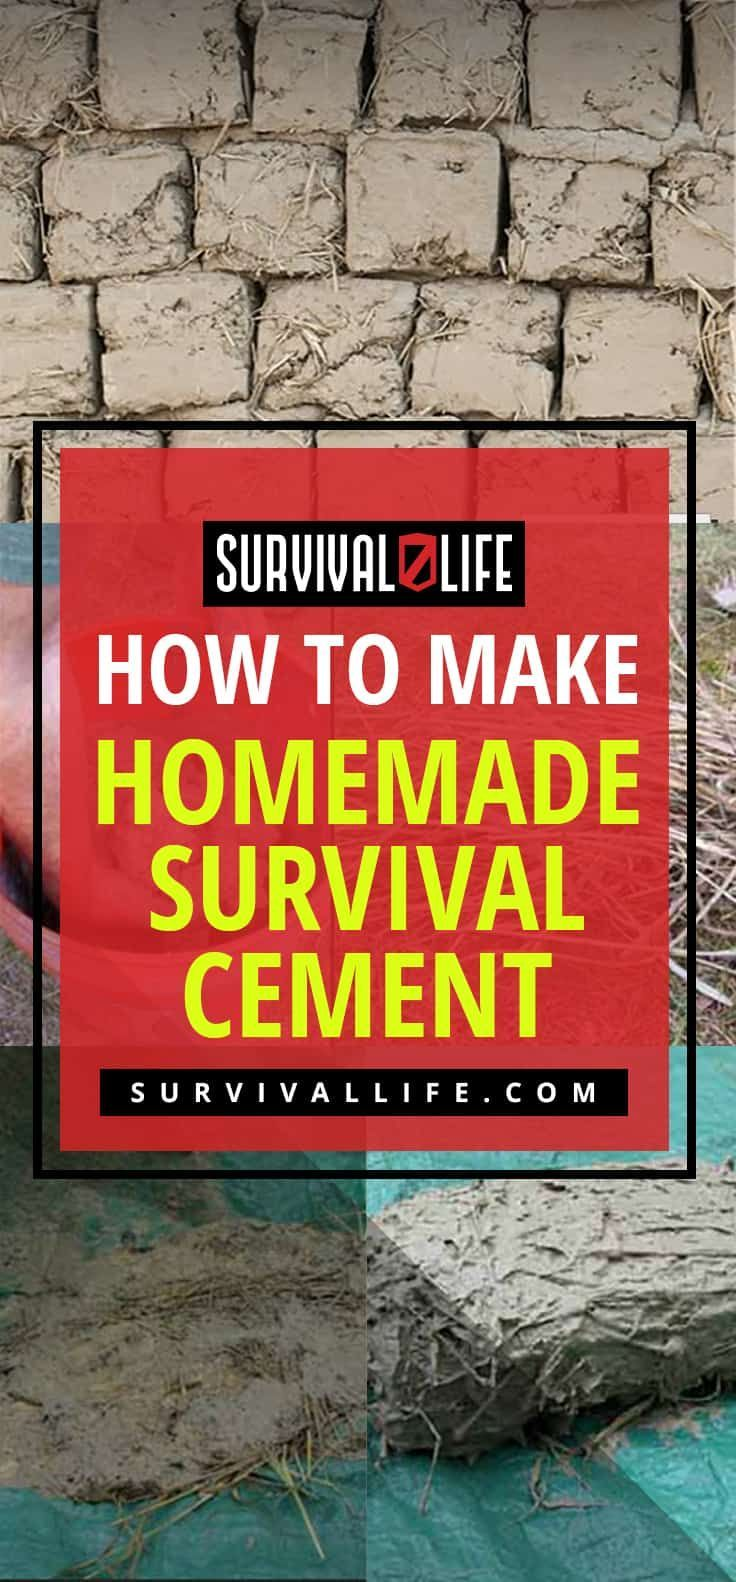 Homemade Cement | How to Make Homemade Survival Cement